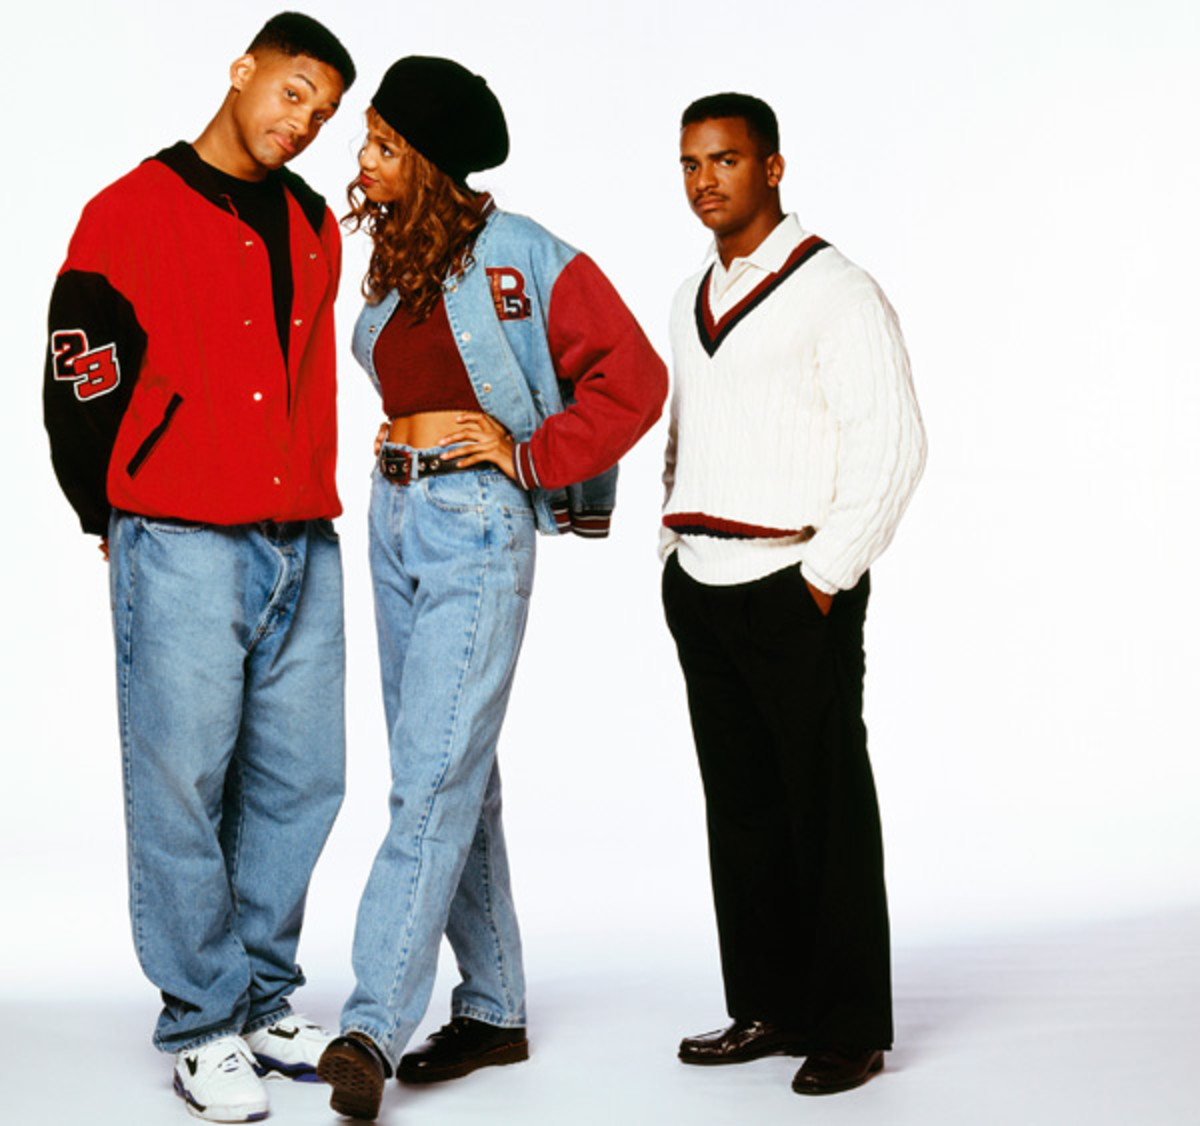 (The Fresh Prince of Bell Air) Will Smith, Tyra Banks and Alfonso Rebeiro :: Chris Haston/NBC/Getty Images